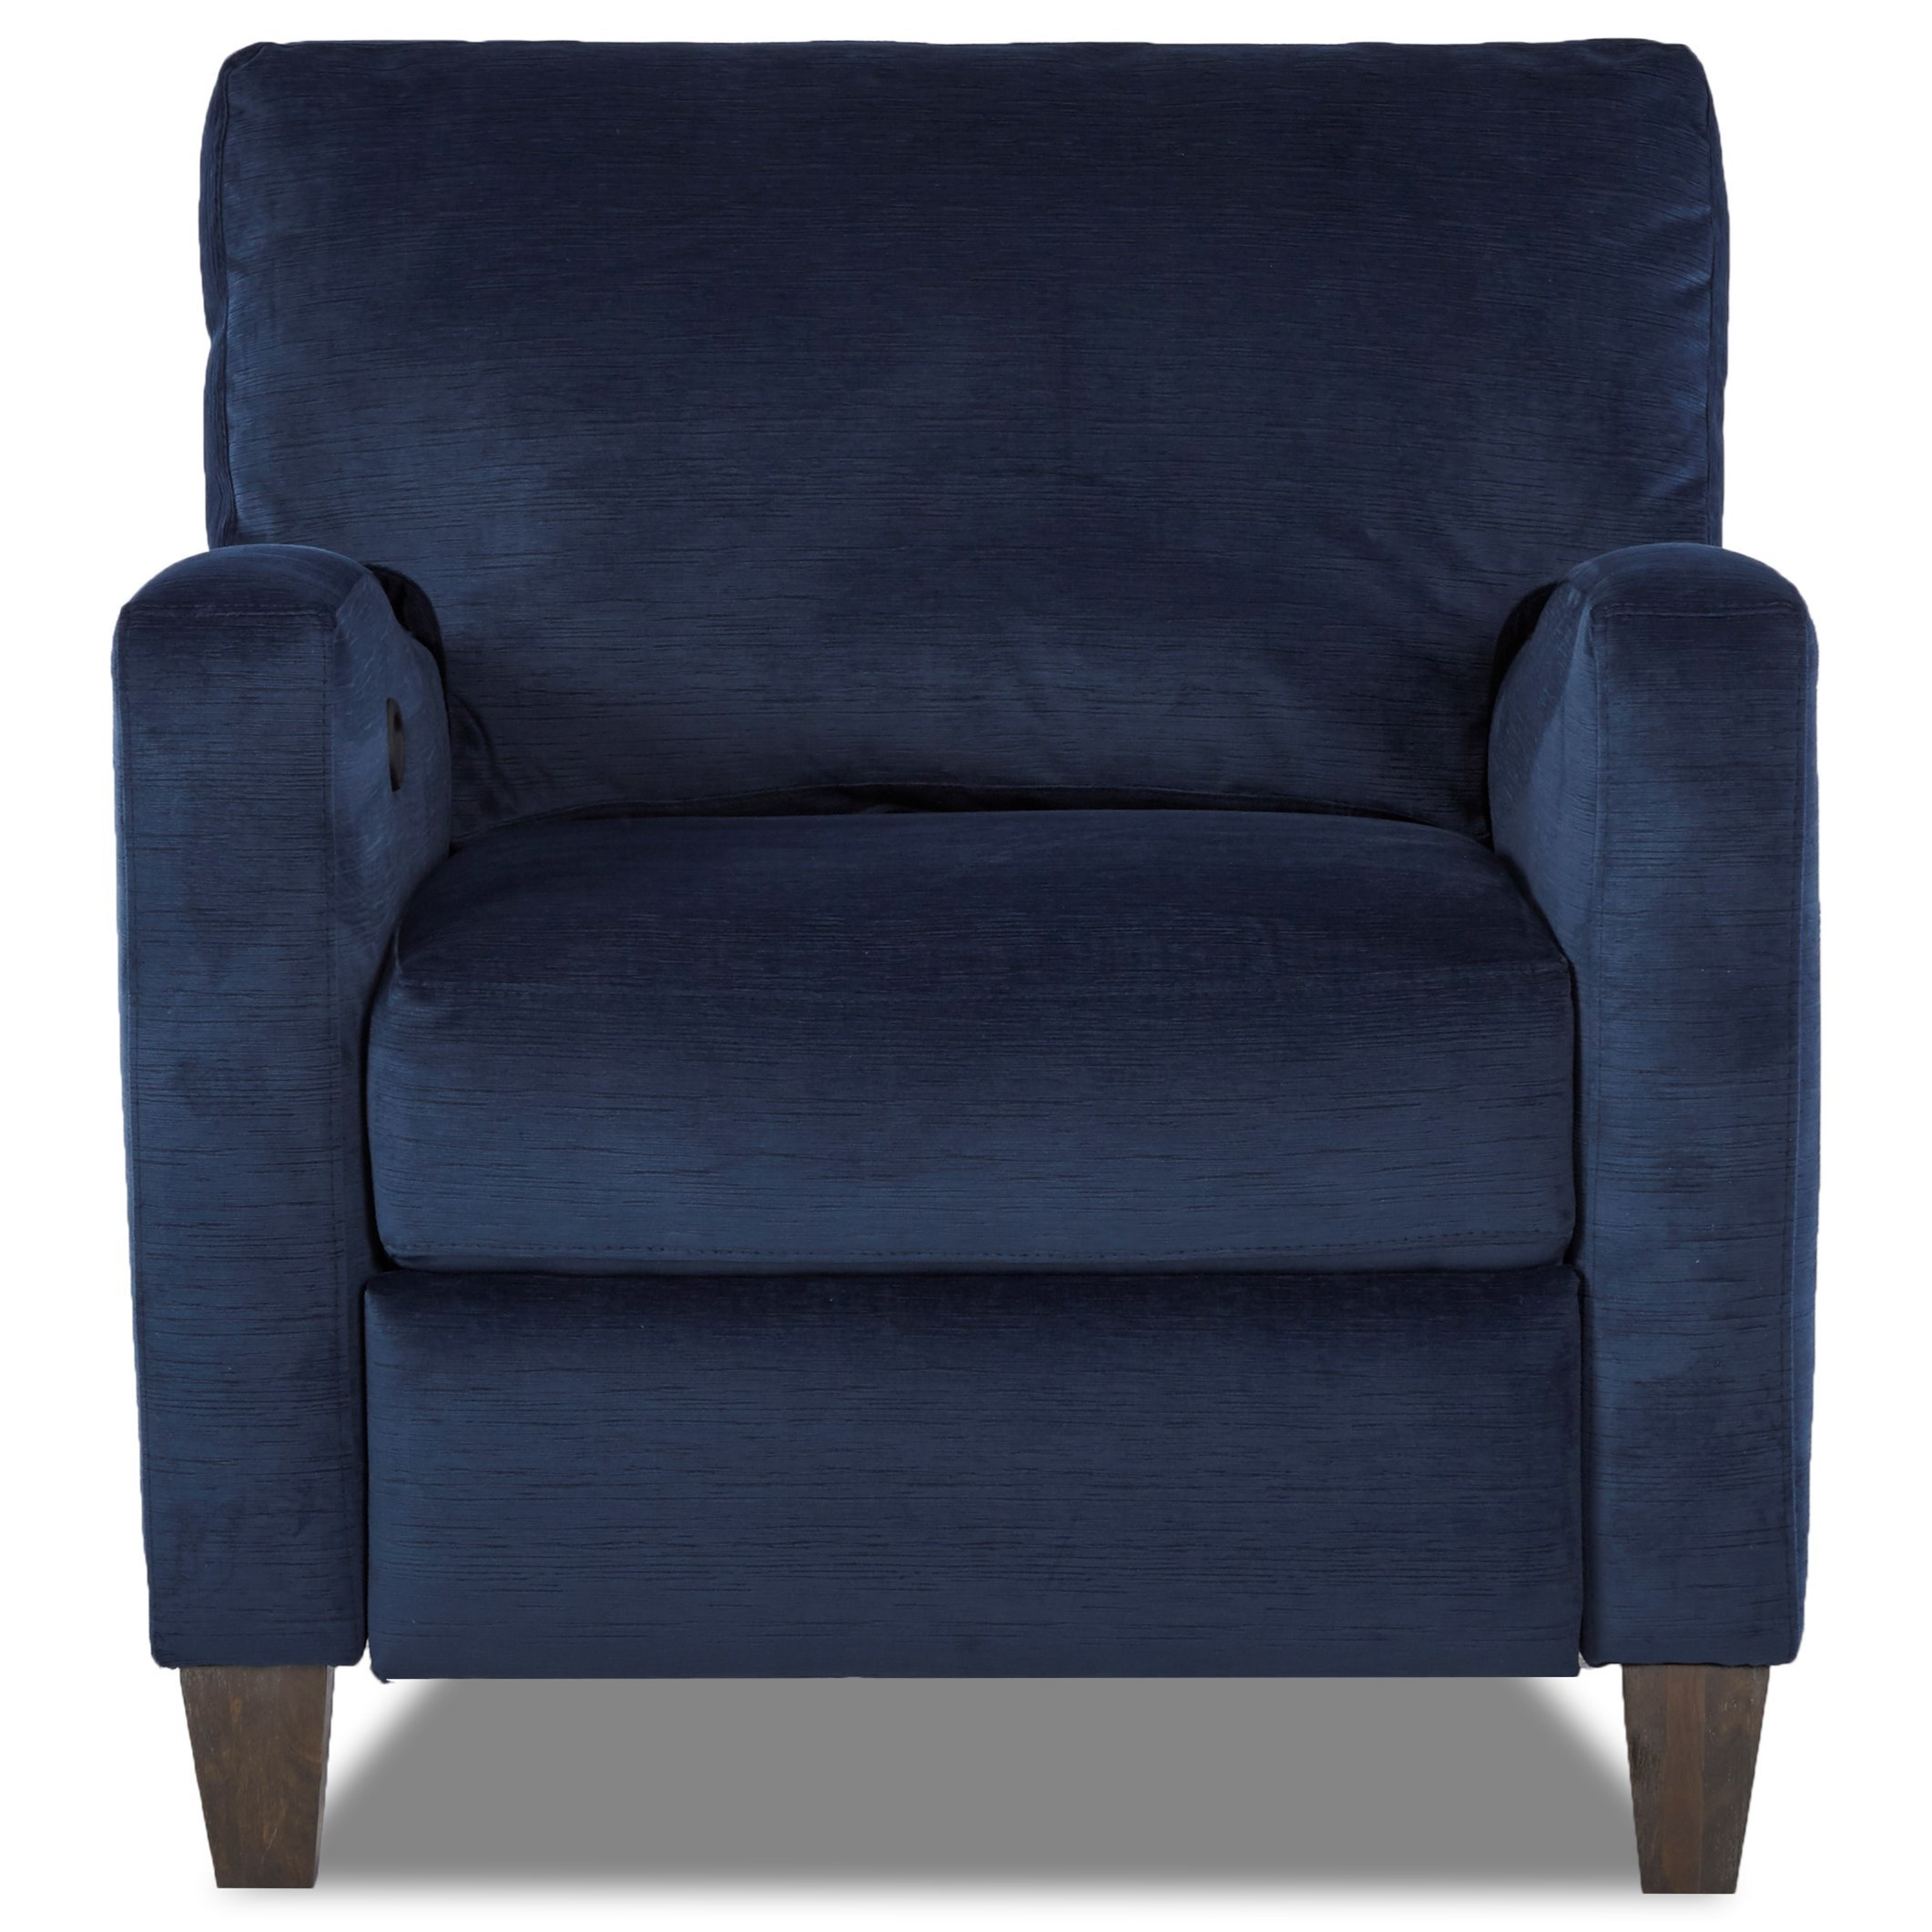 Colleen Power Hybrid Chair by Klaussner at Pilgrim Furniture City